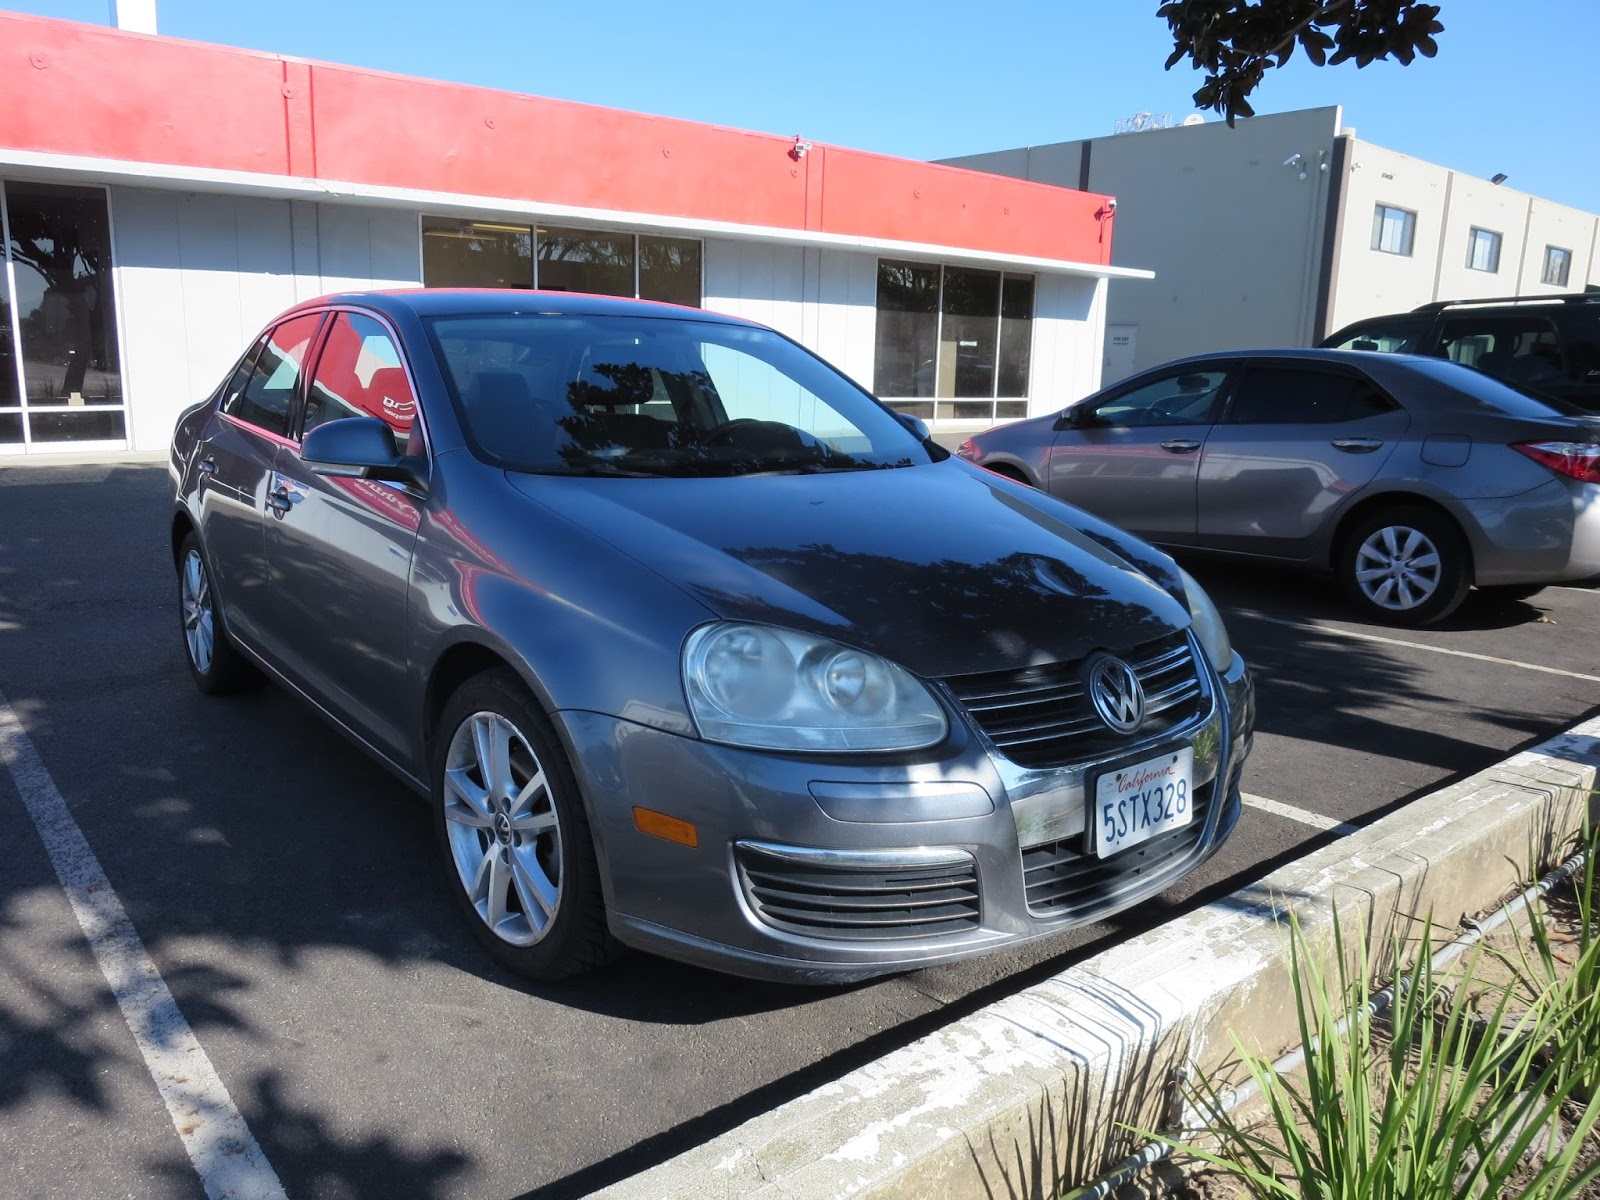 Auto BodyCollision RepairCar Paint In FremontHaywardUnion City - Volkswagen collision repair